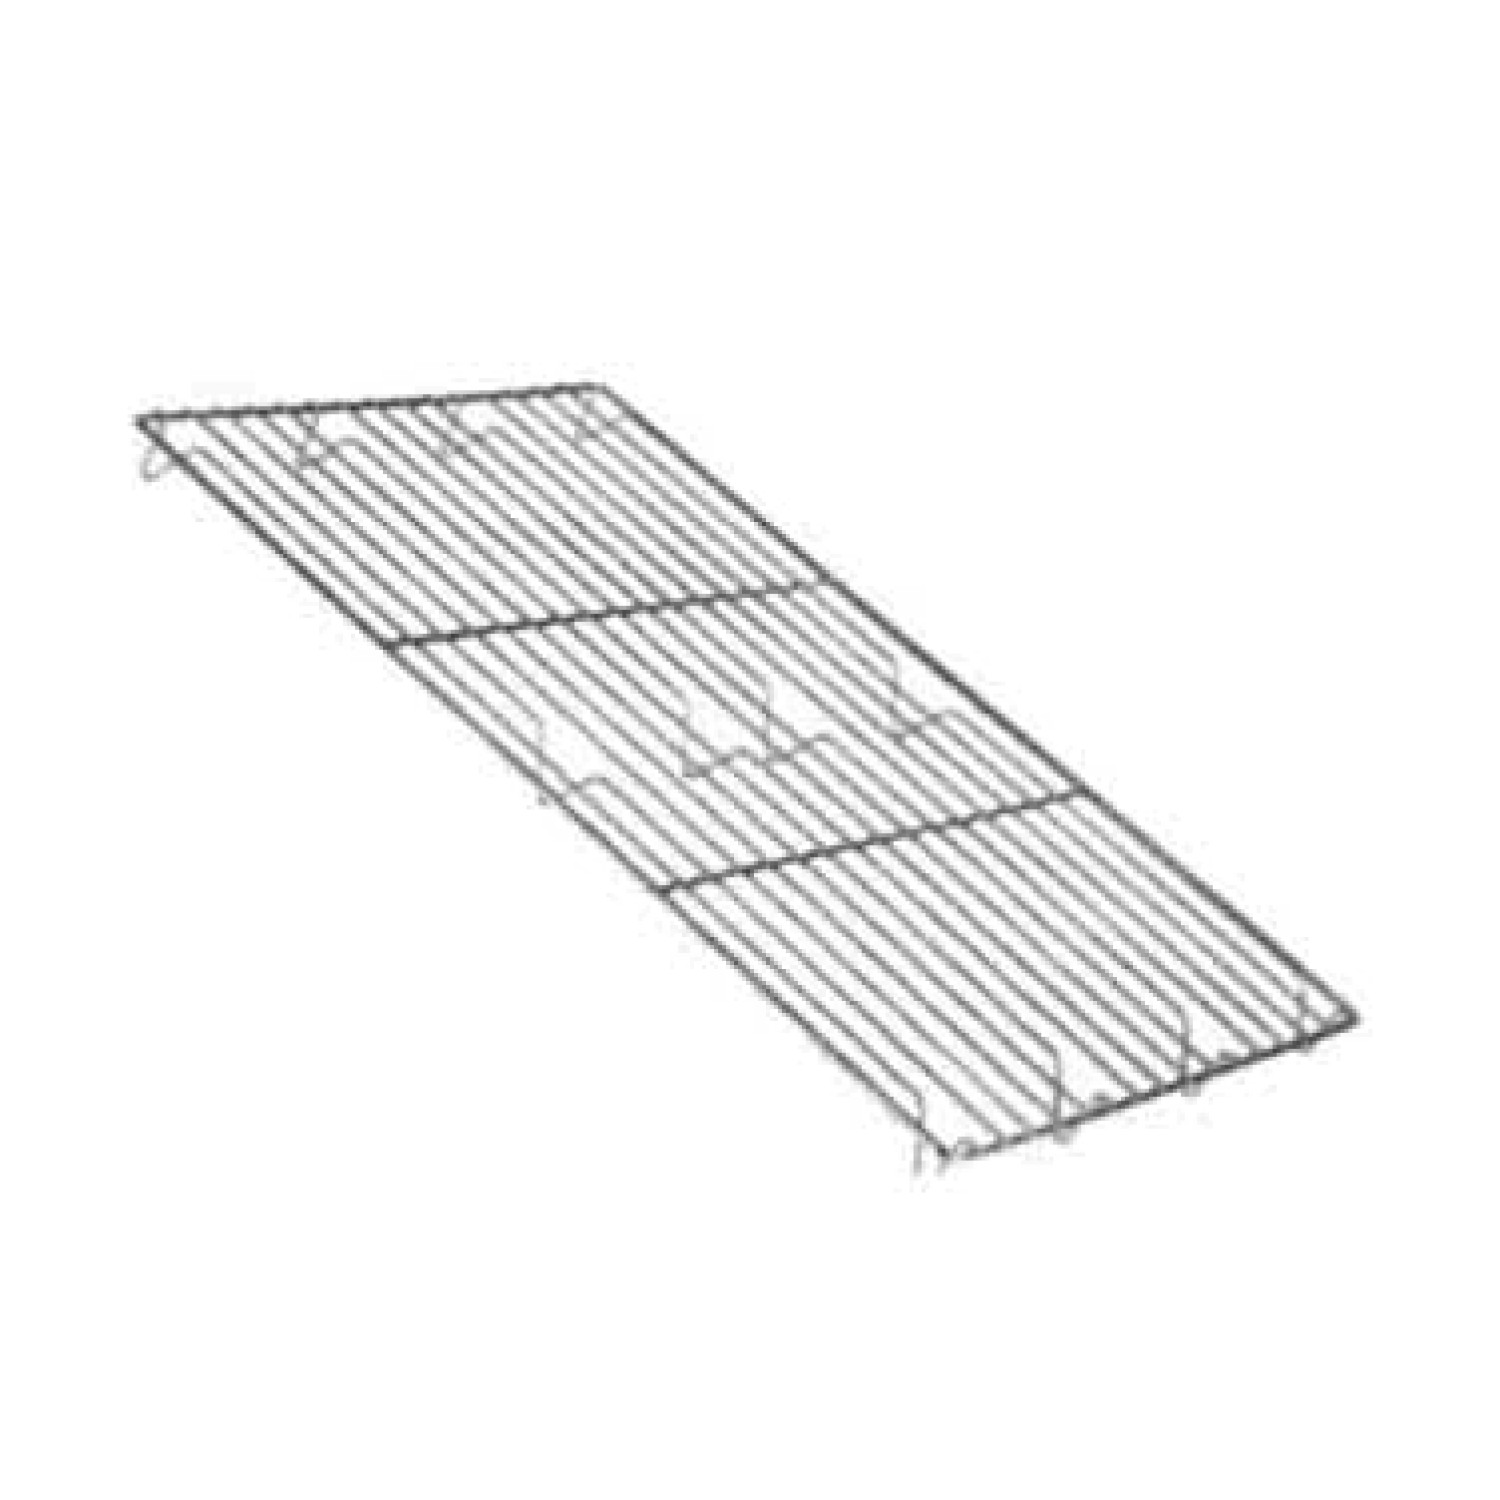 CresCor 1170-030 Wire Basket